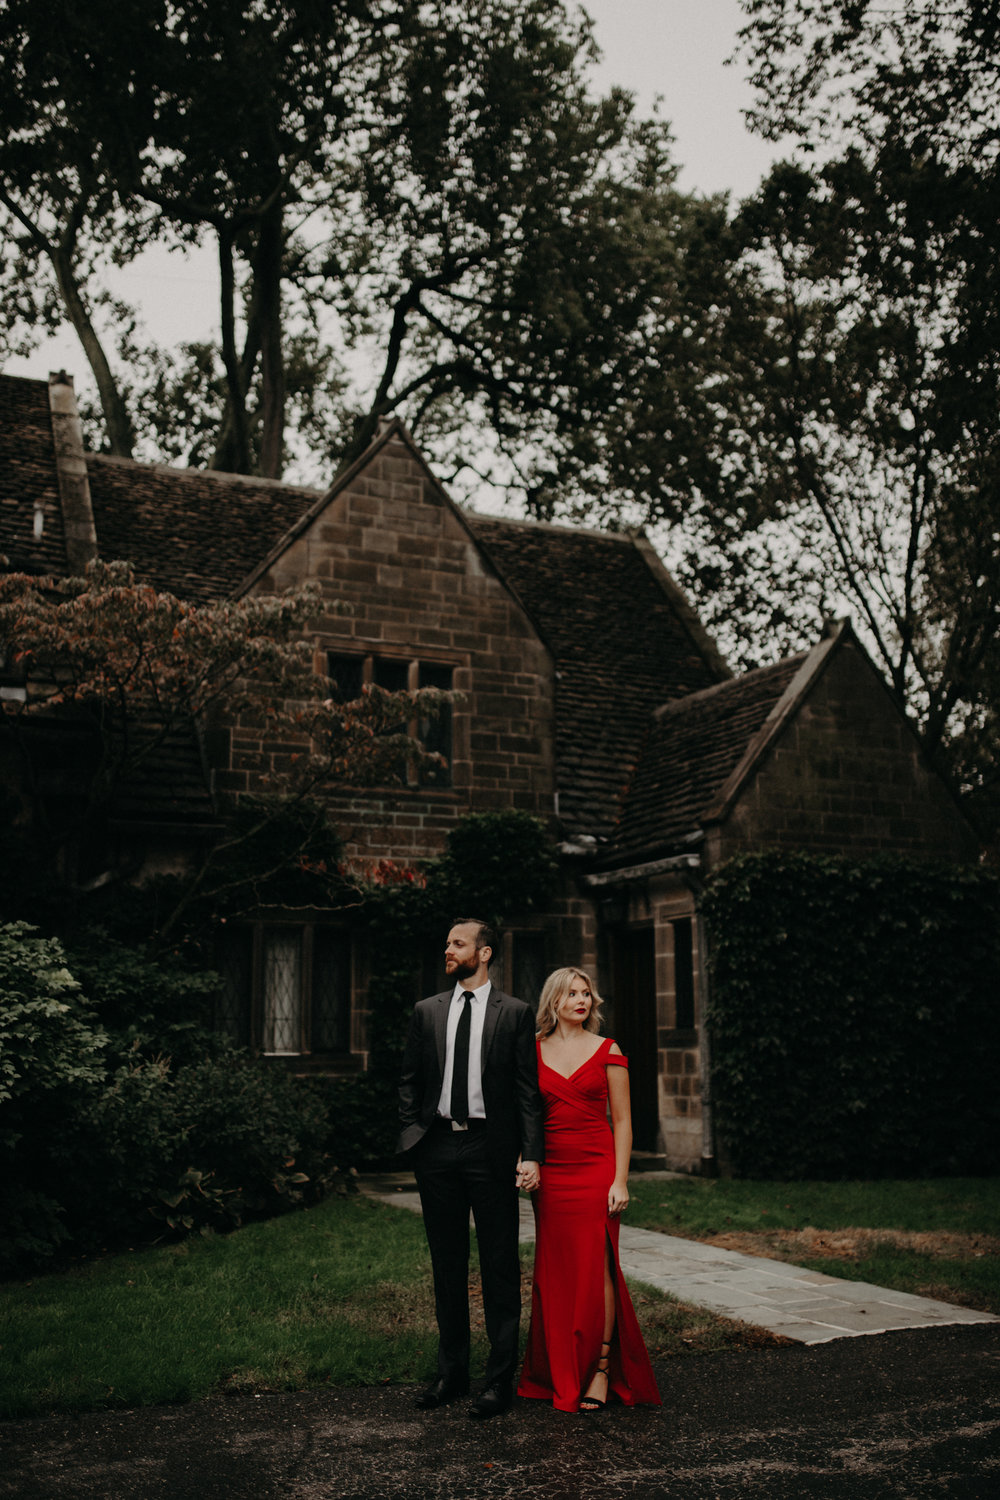 Couple wearing red dress standing at Edsel & Eleanor Ford Mansion